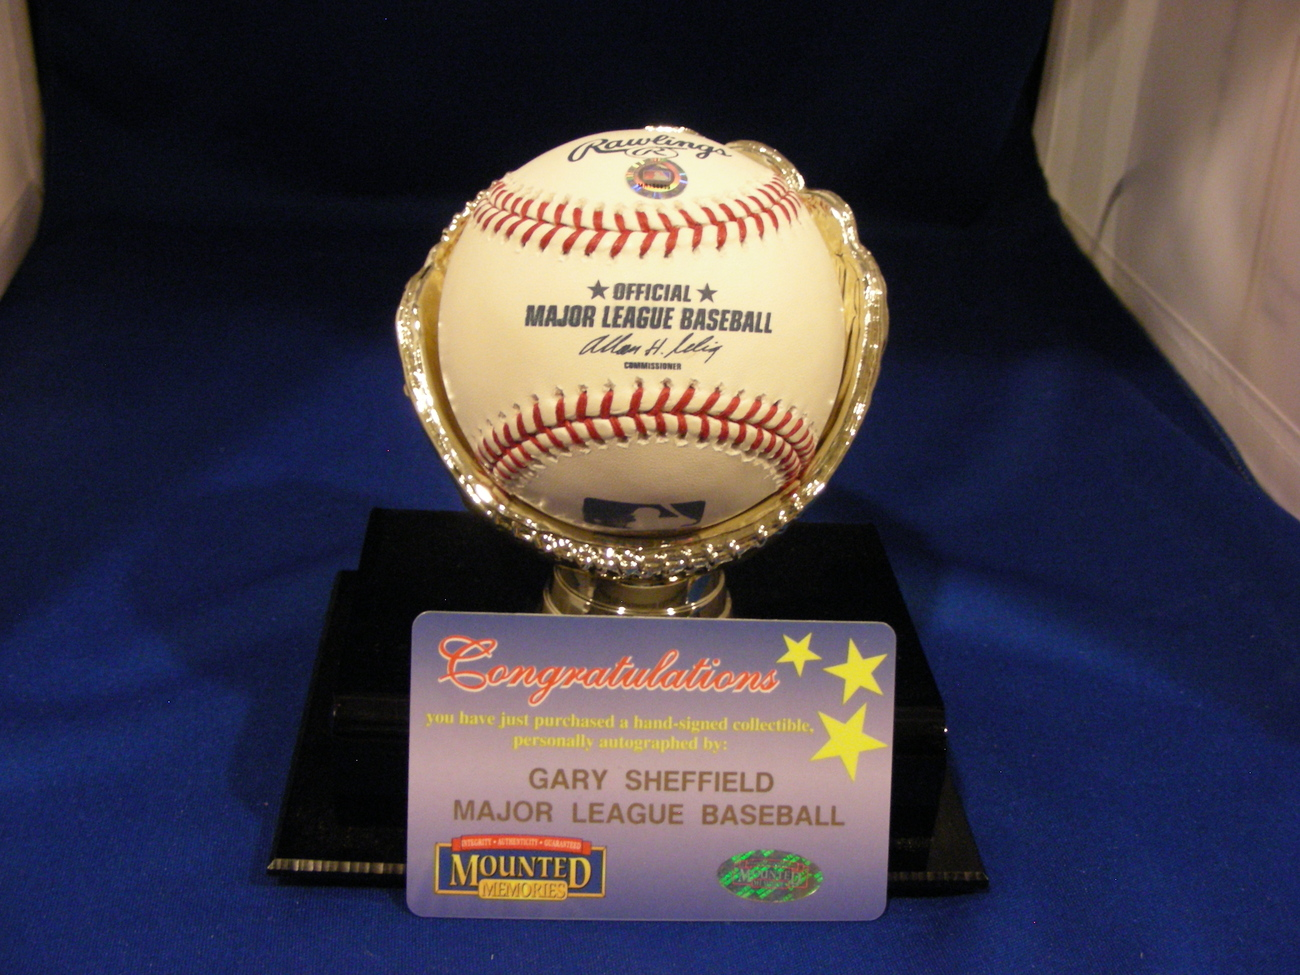 GARY SHEFFIELD 500 HR CLUB 1997 WSC SIGNED AUTO BALL MOUNTED MEMORIES AUTHENTIC